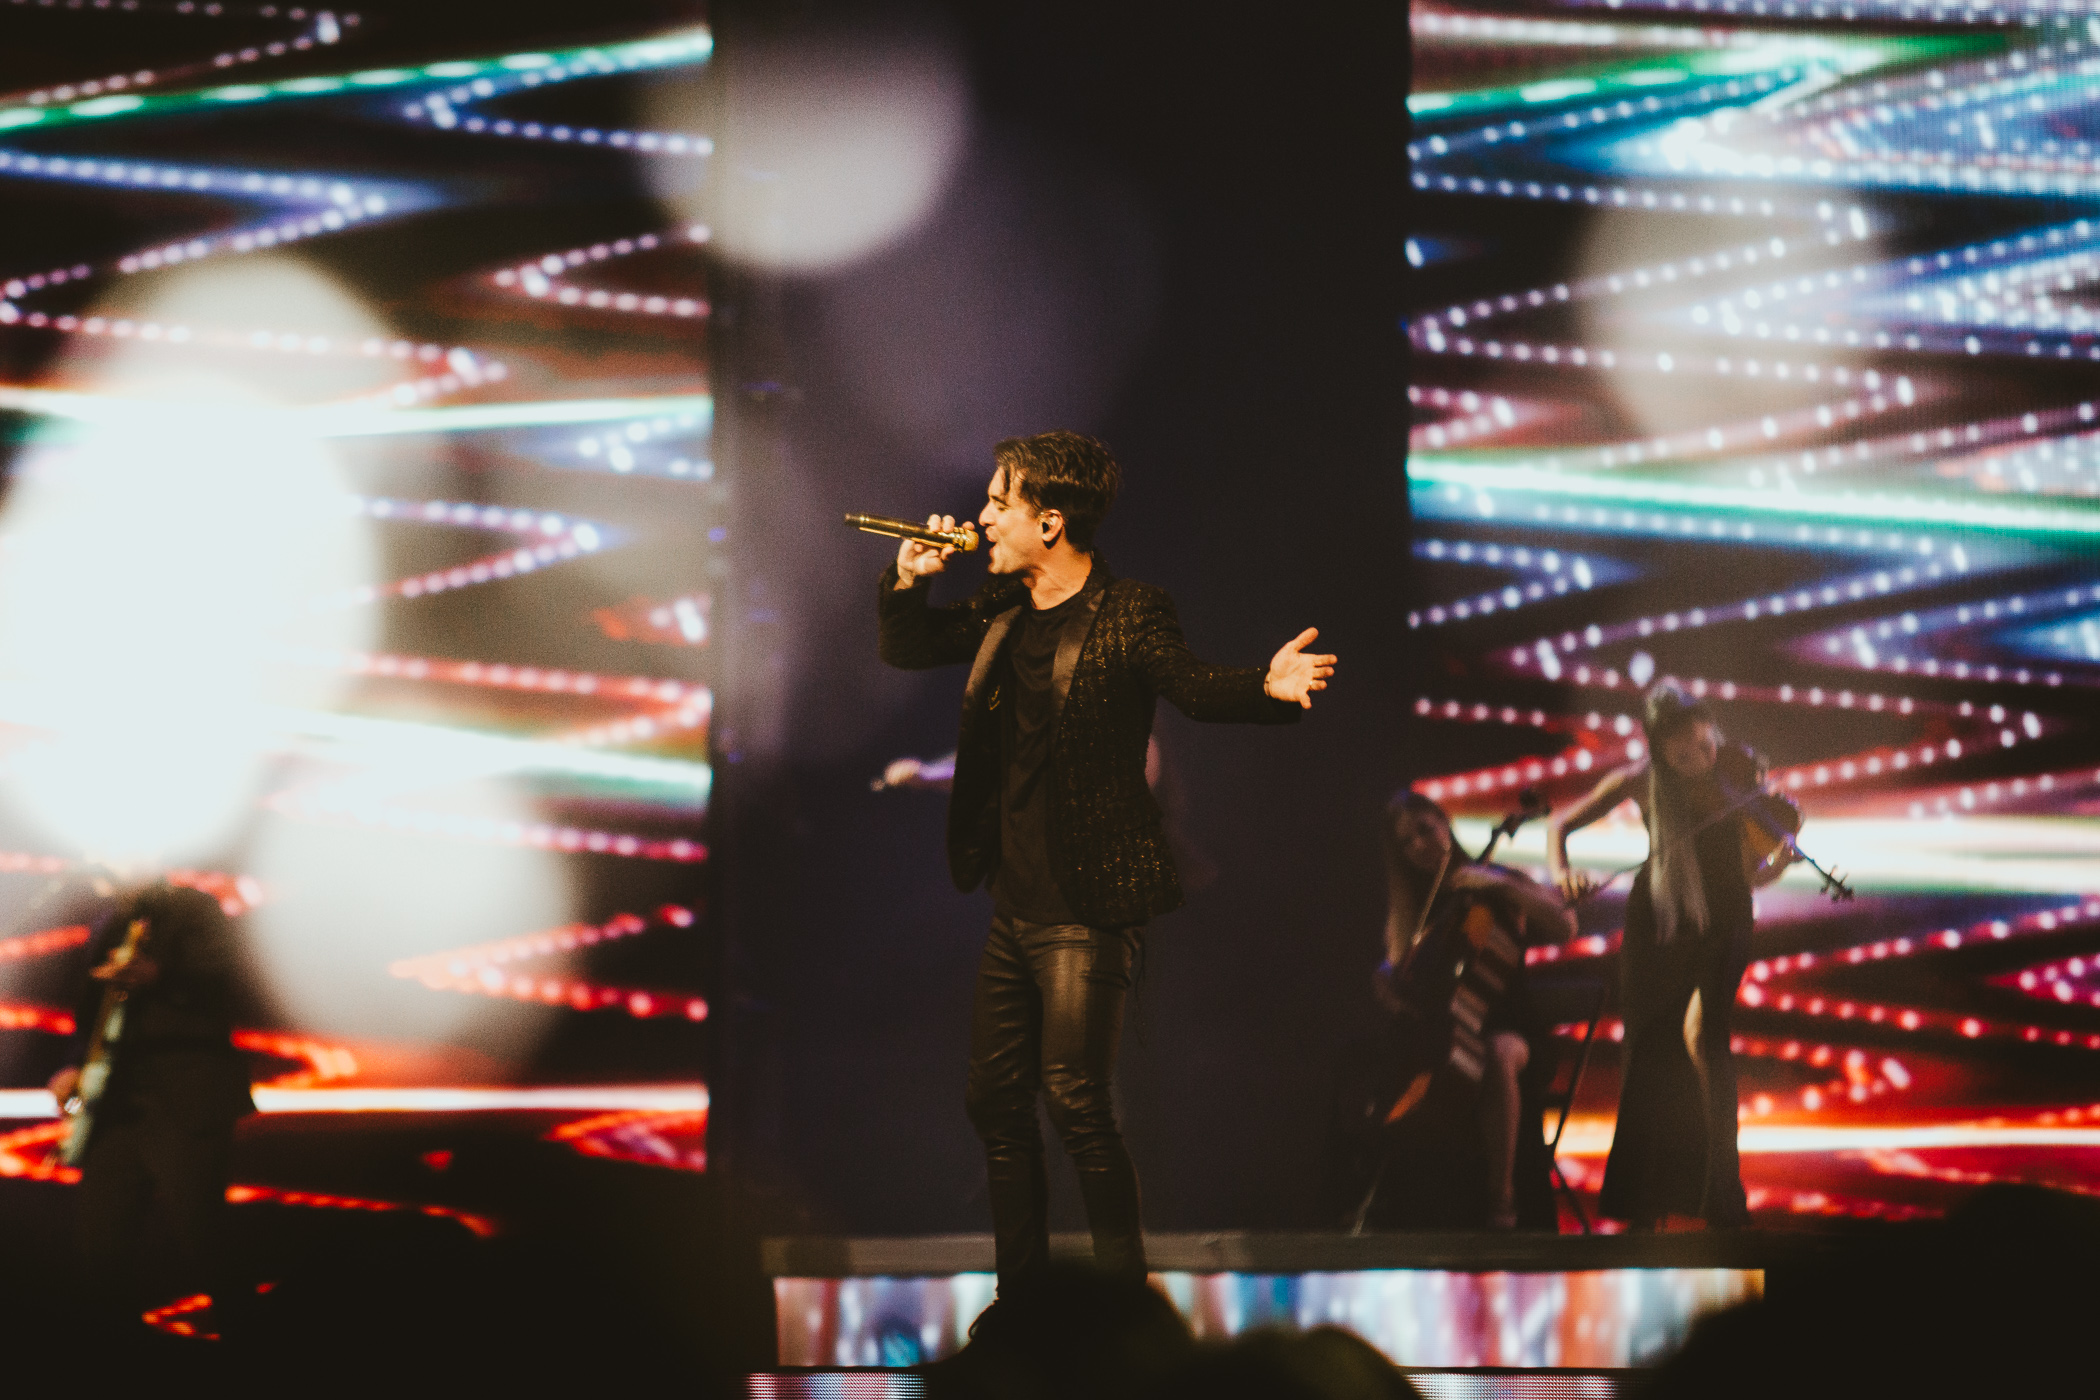 1_Panic!_At_The_Disco-Rogers_Arena-Timothy_Nguyen-20180811-7.jpg